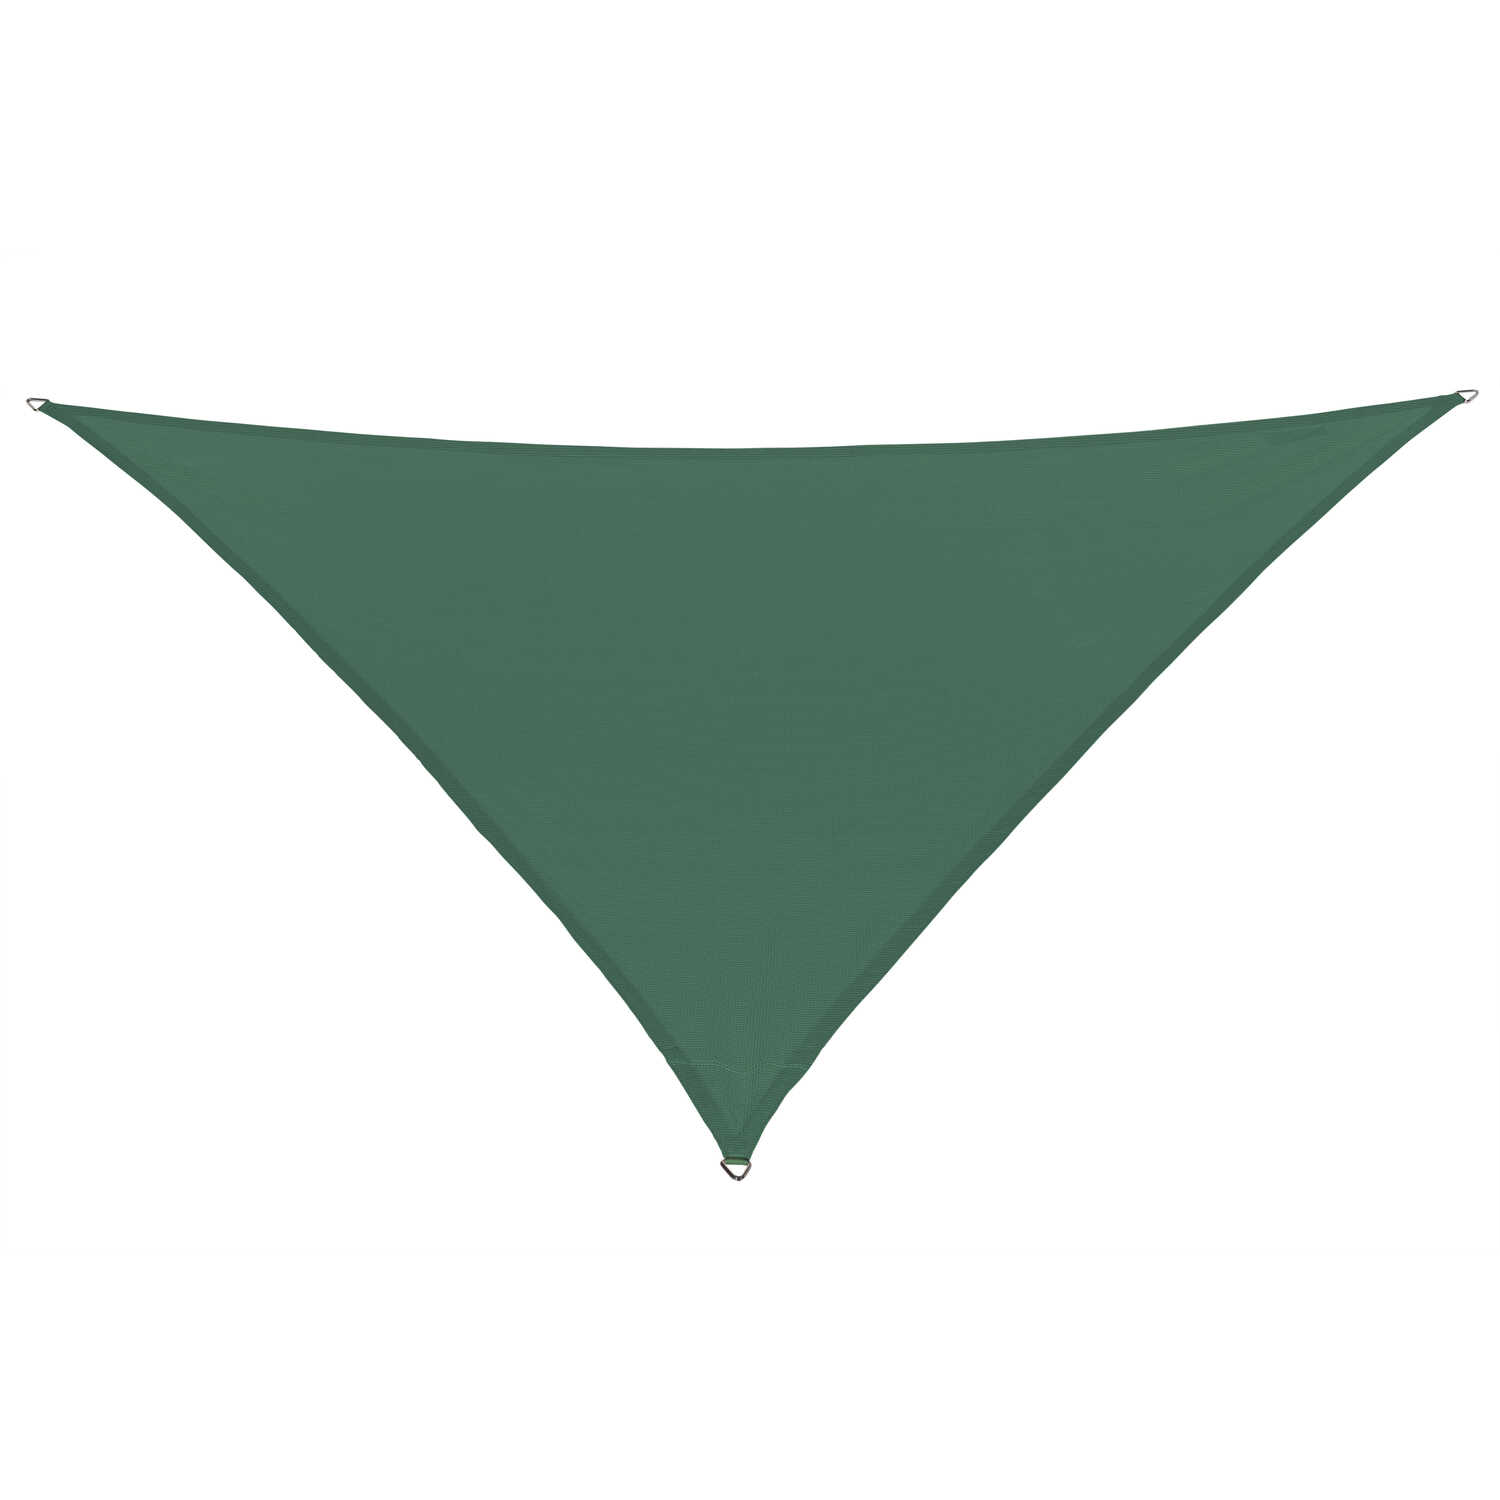 Coolaroo  Fabric  Triangle Shade Sail Canopy  12 ft. W x 12 ft. L